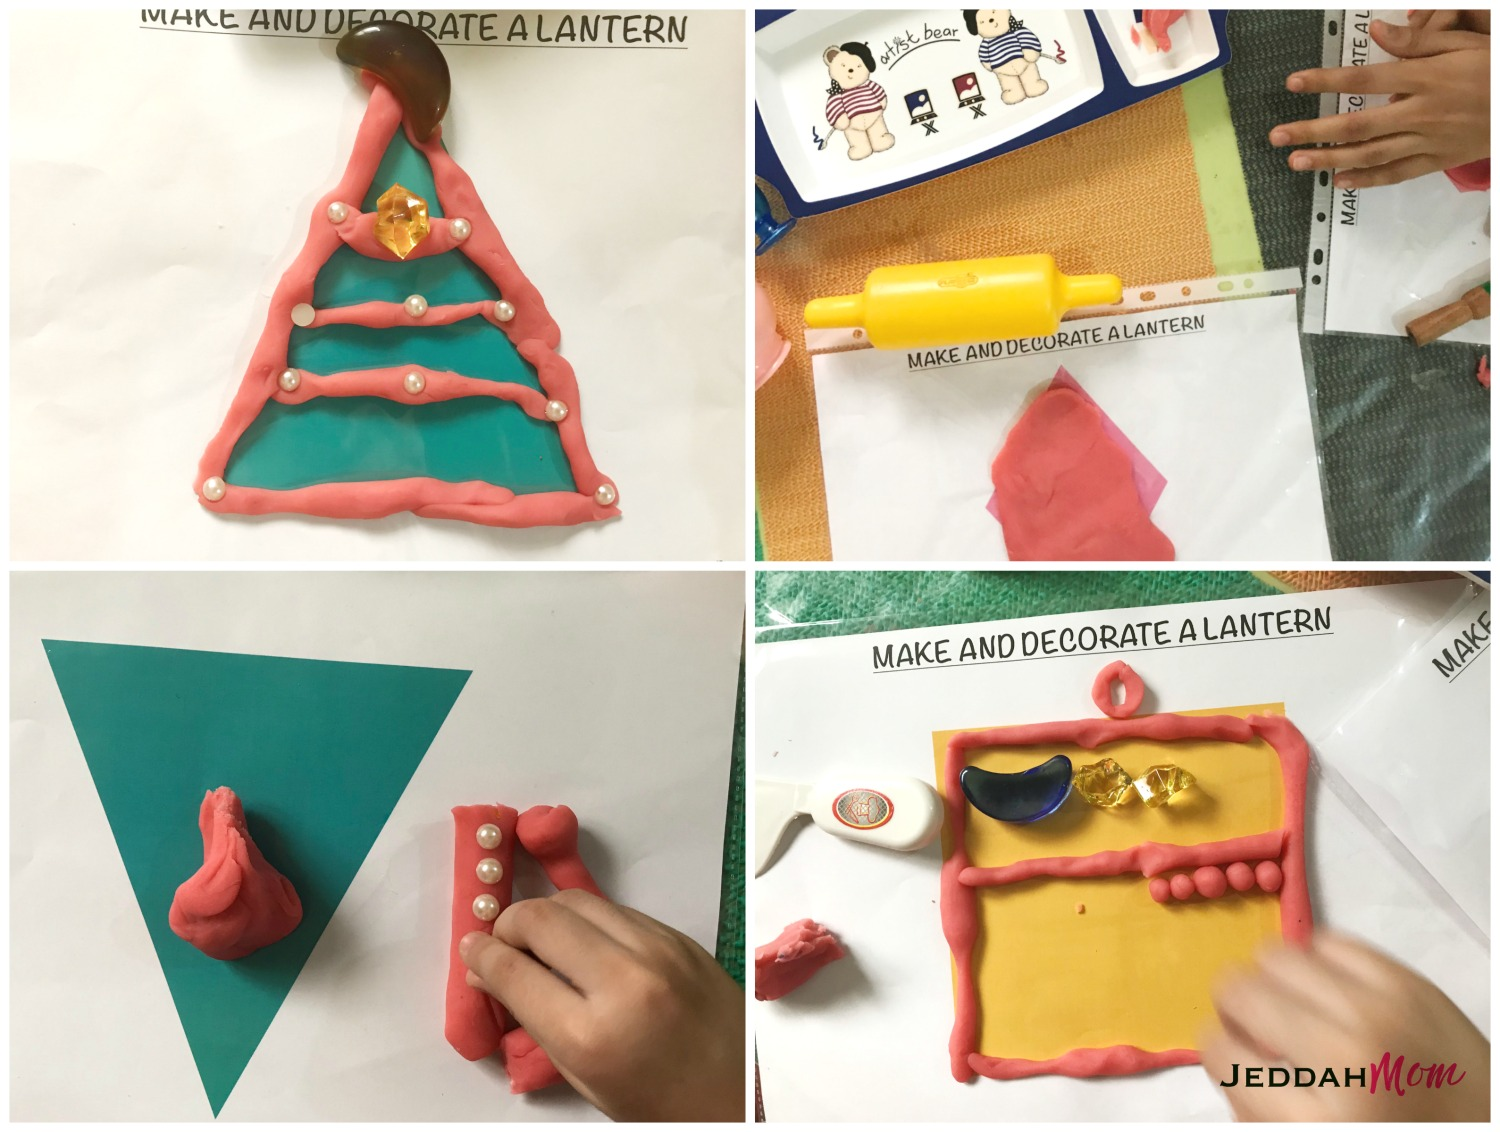 Make and decorate a lantern sensory activities and playdough mats for kids JeddahMom